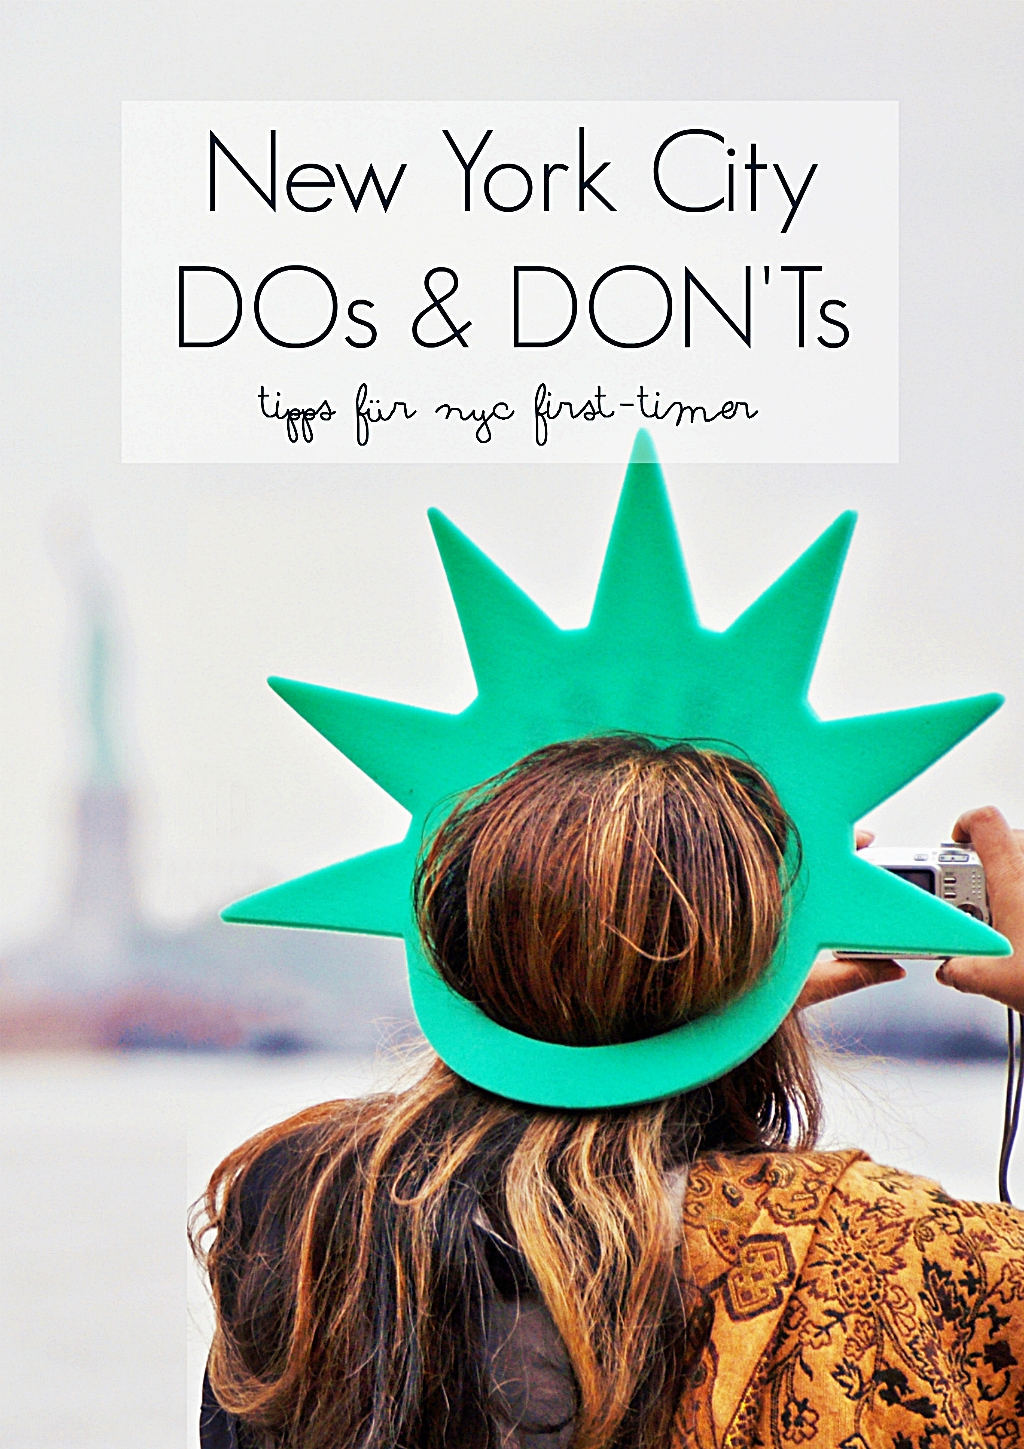 New York DOs & DON\'Ts - NYC City Trip Tipps für First-Timer